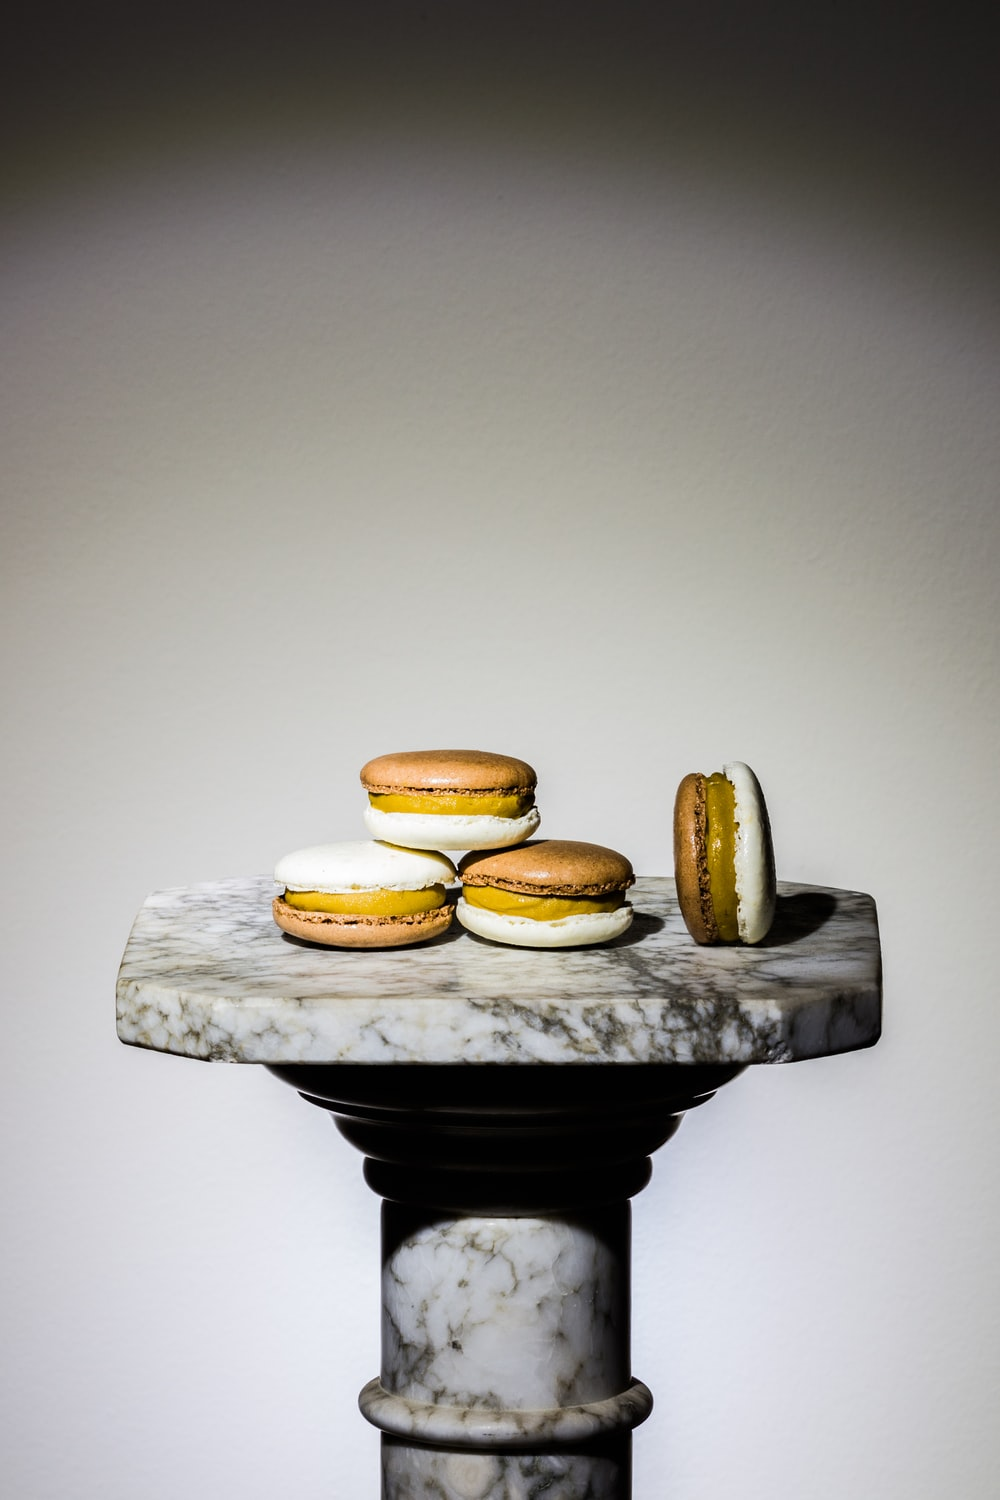 four French macaroons